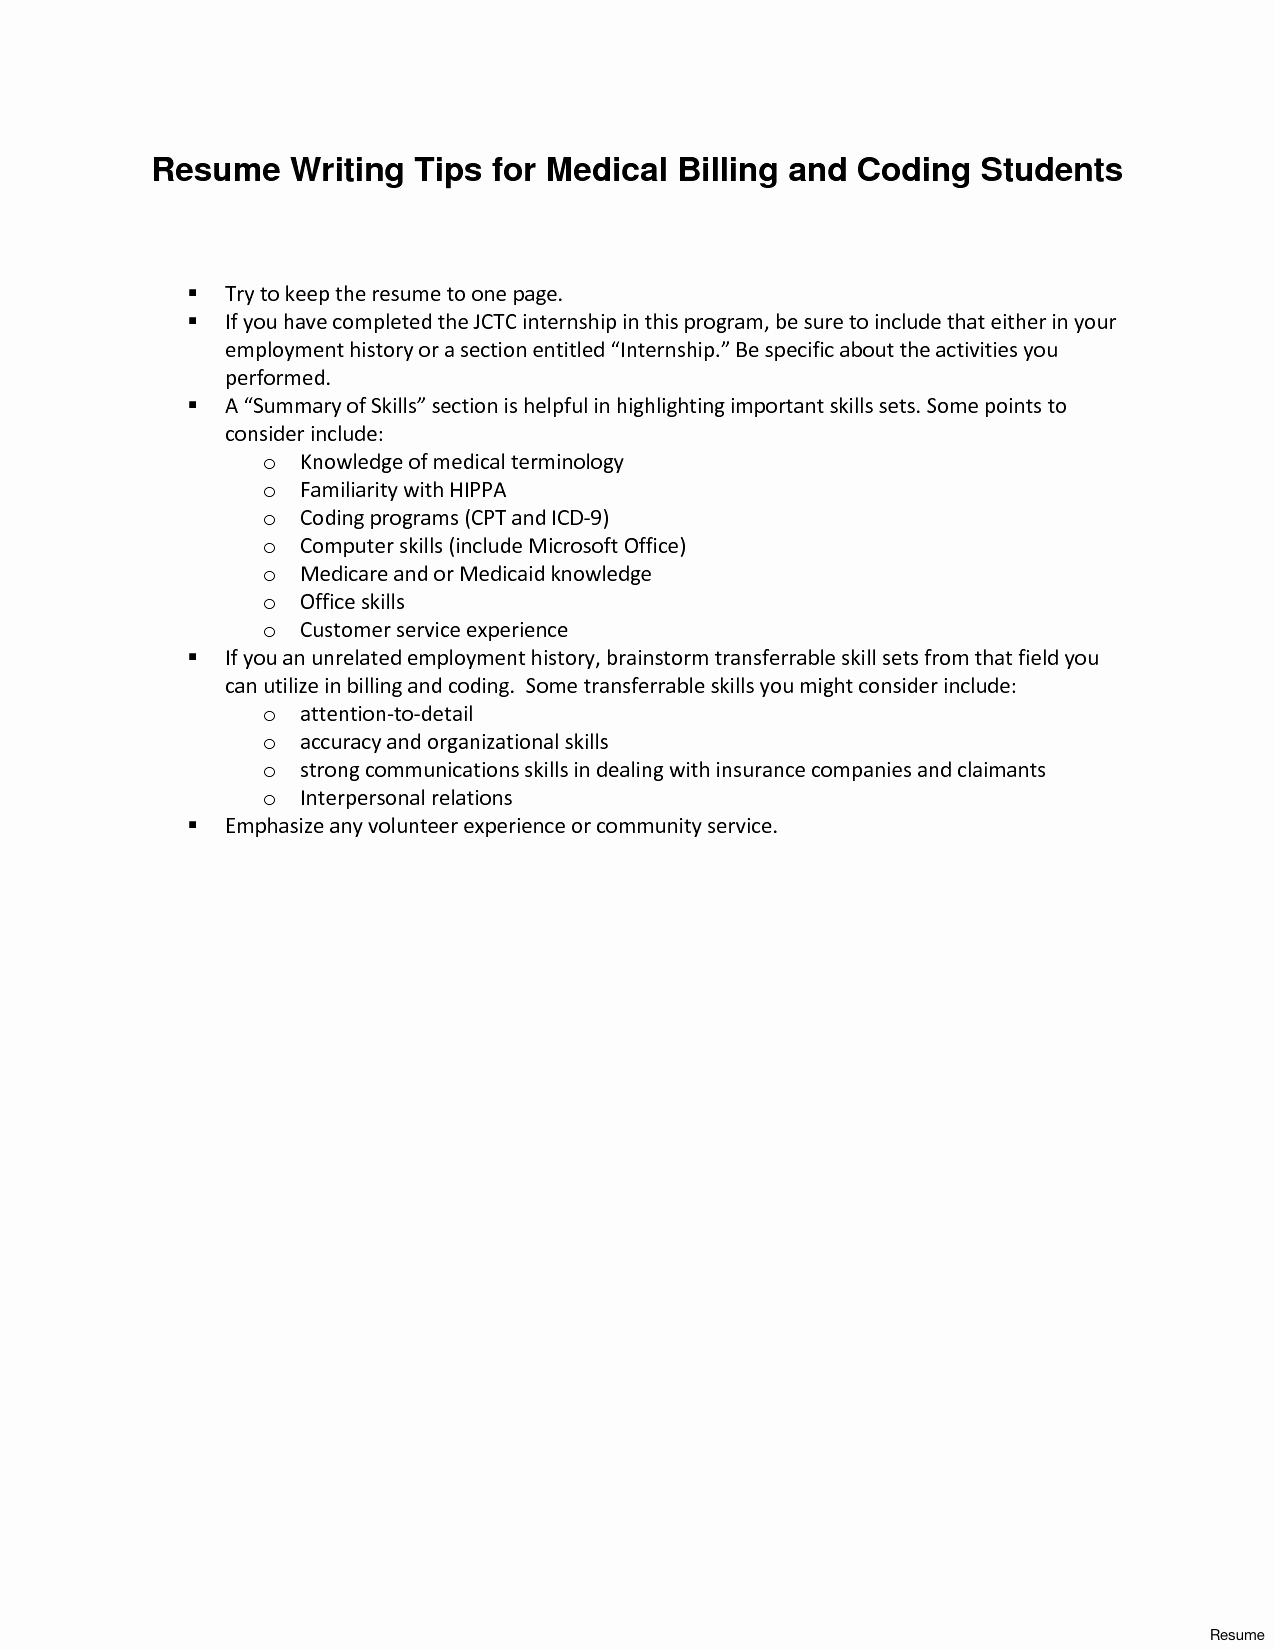 Medical Billing and Coding Resume - Medical Coding Resume Example New Medical Billing Resume 5